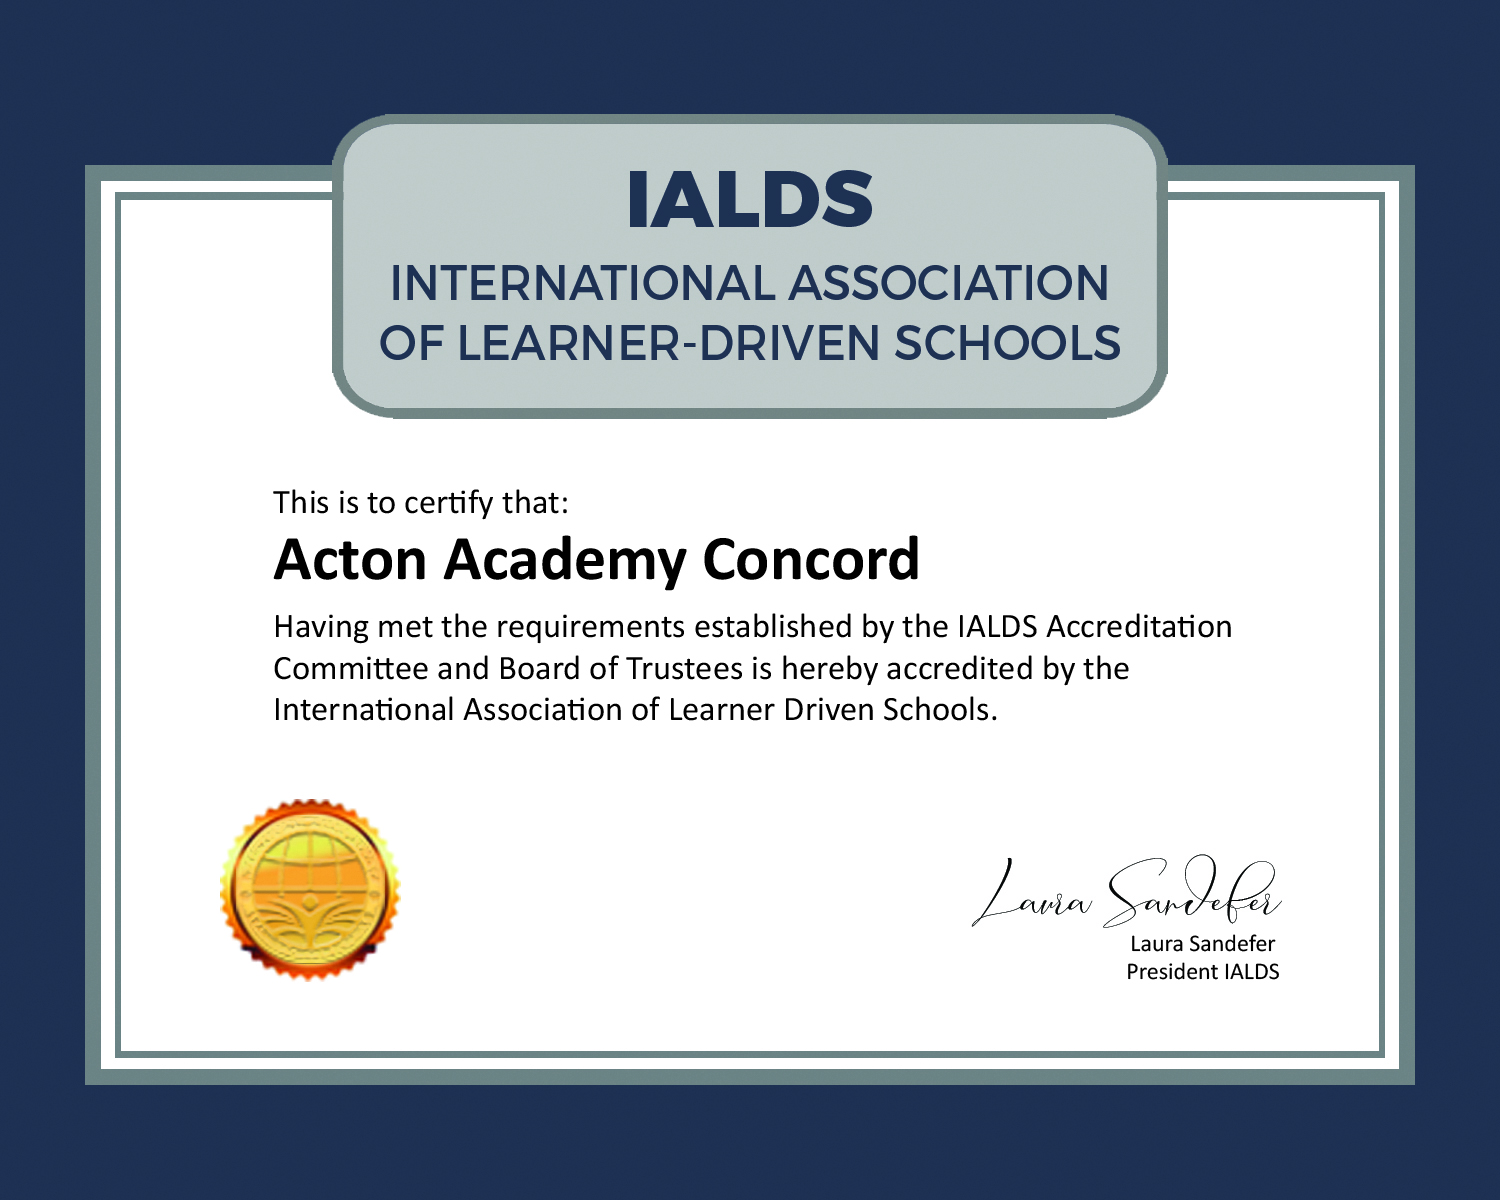 IALDS Certification for Acton Concord